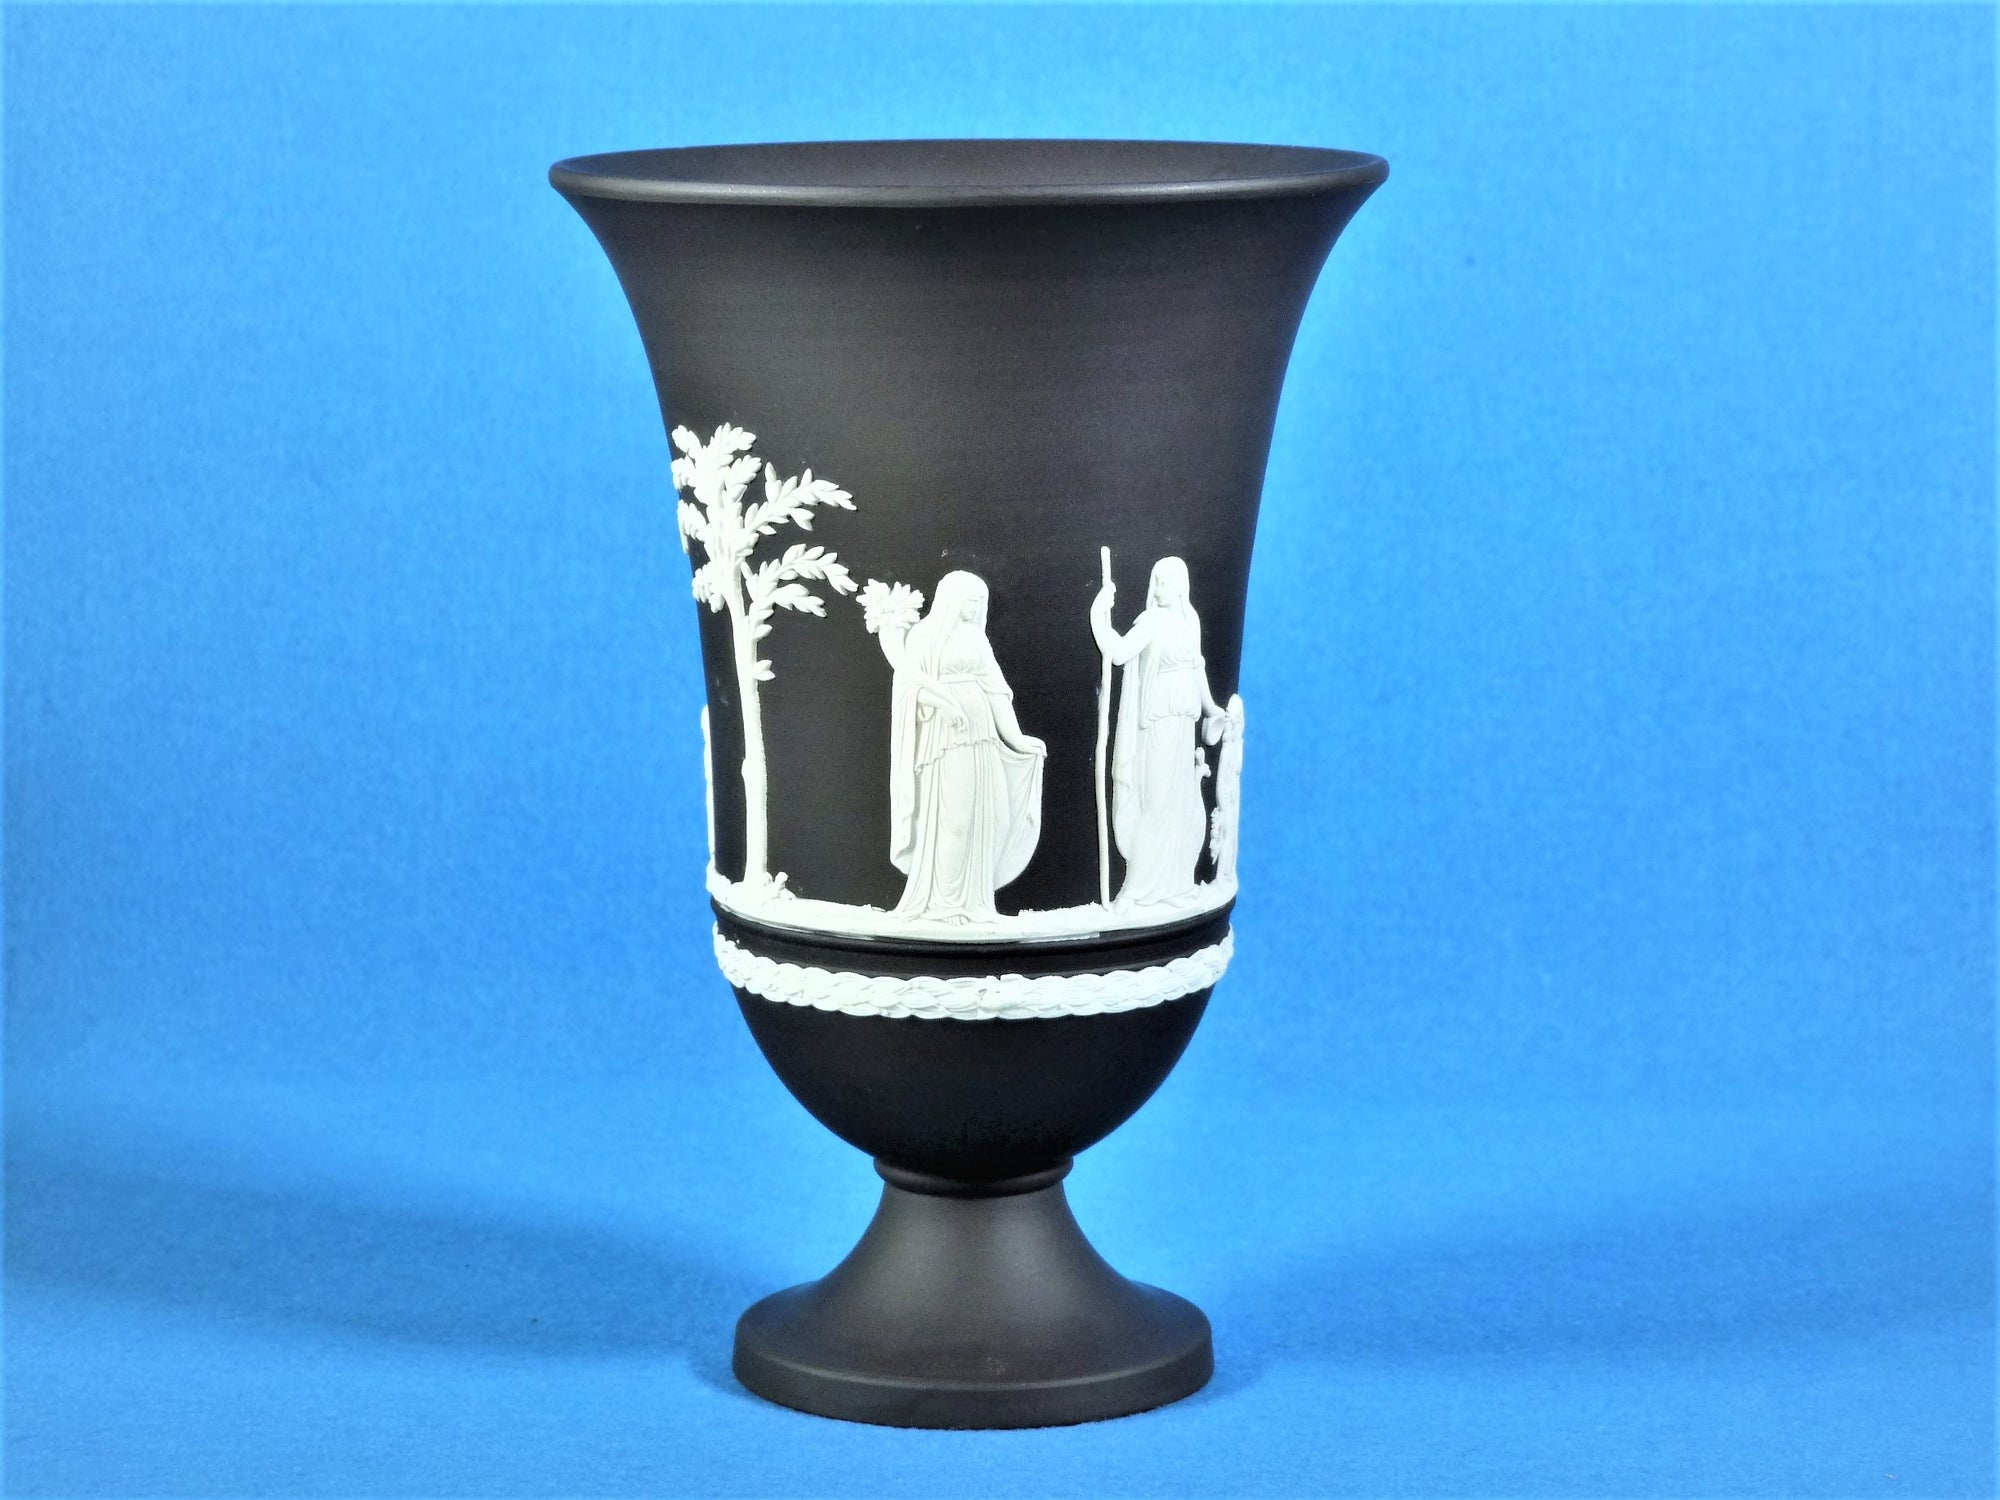 Black Jasperware Wedgwood Vase, Decorative Ornament, Stunning Vase